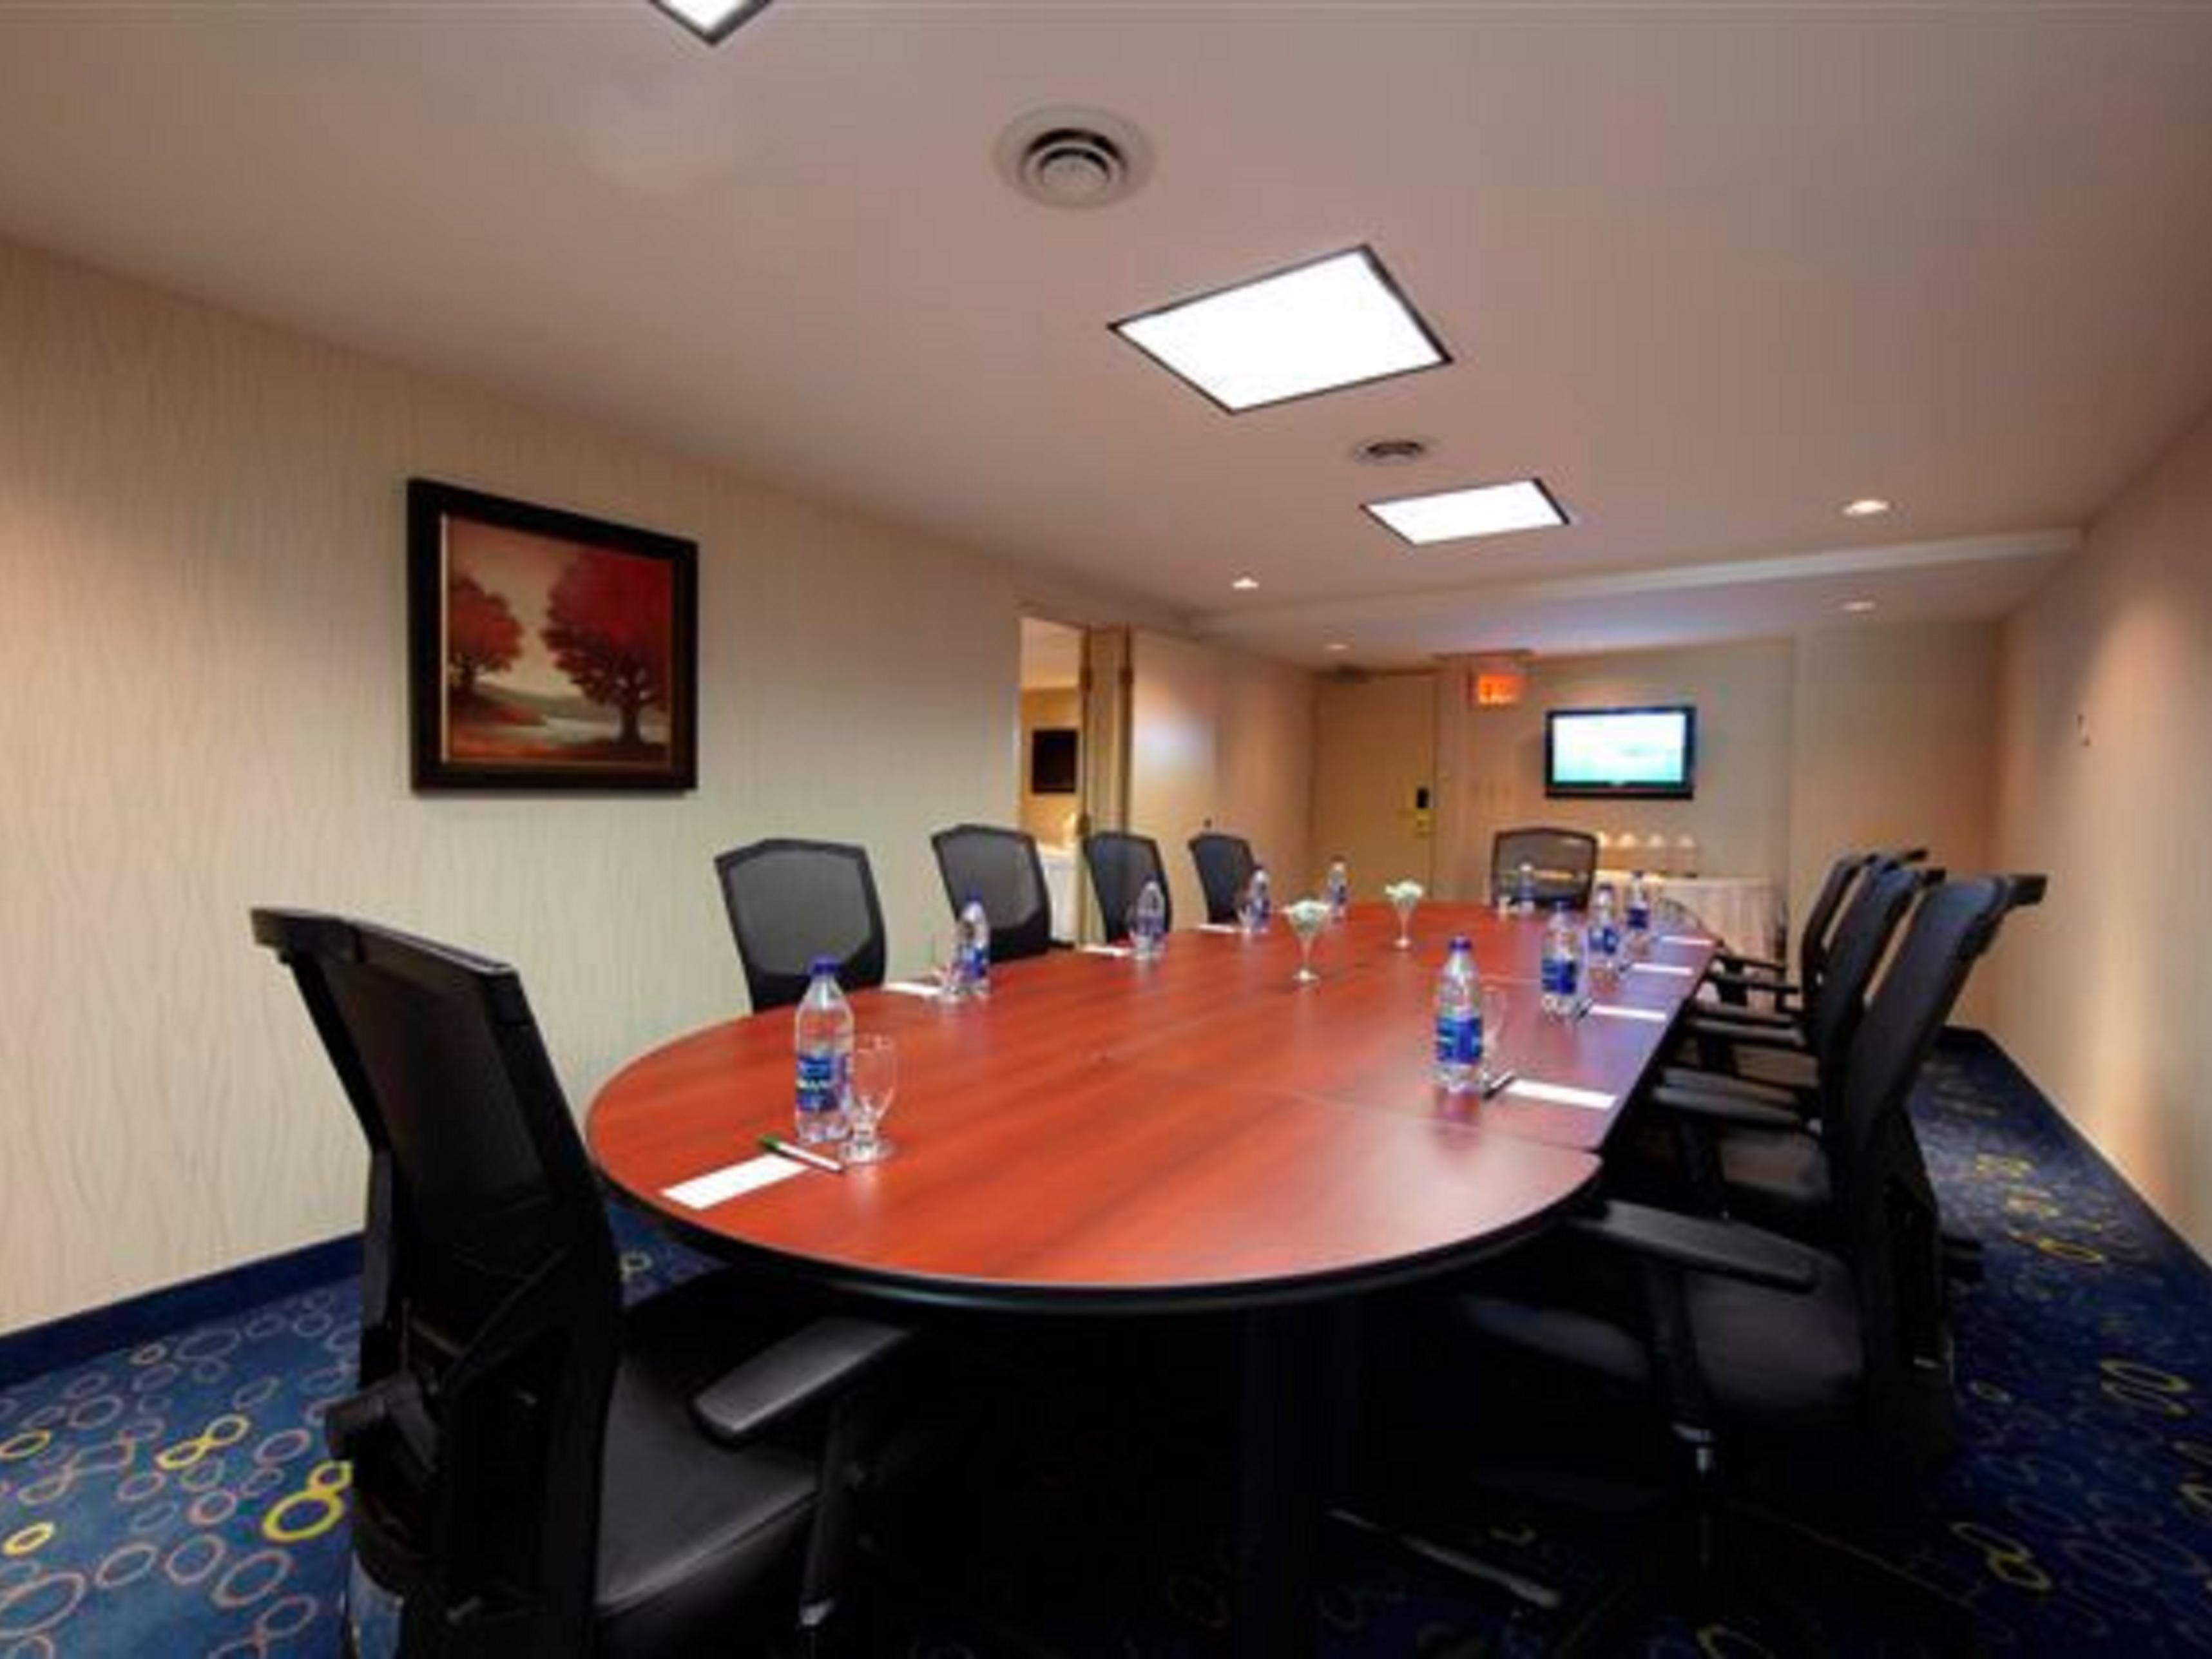 Ideal for smaller boardroom meetings